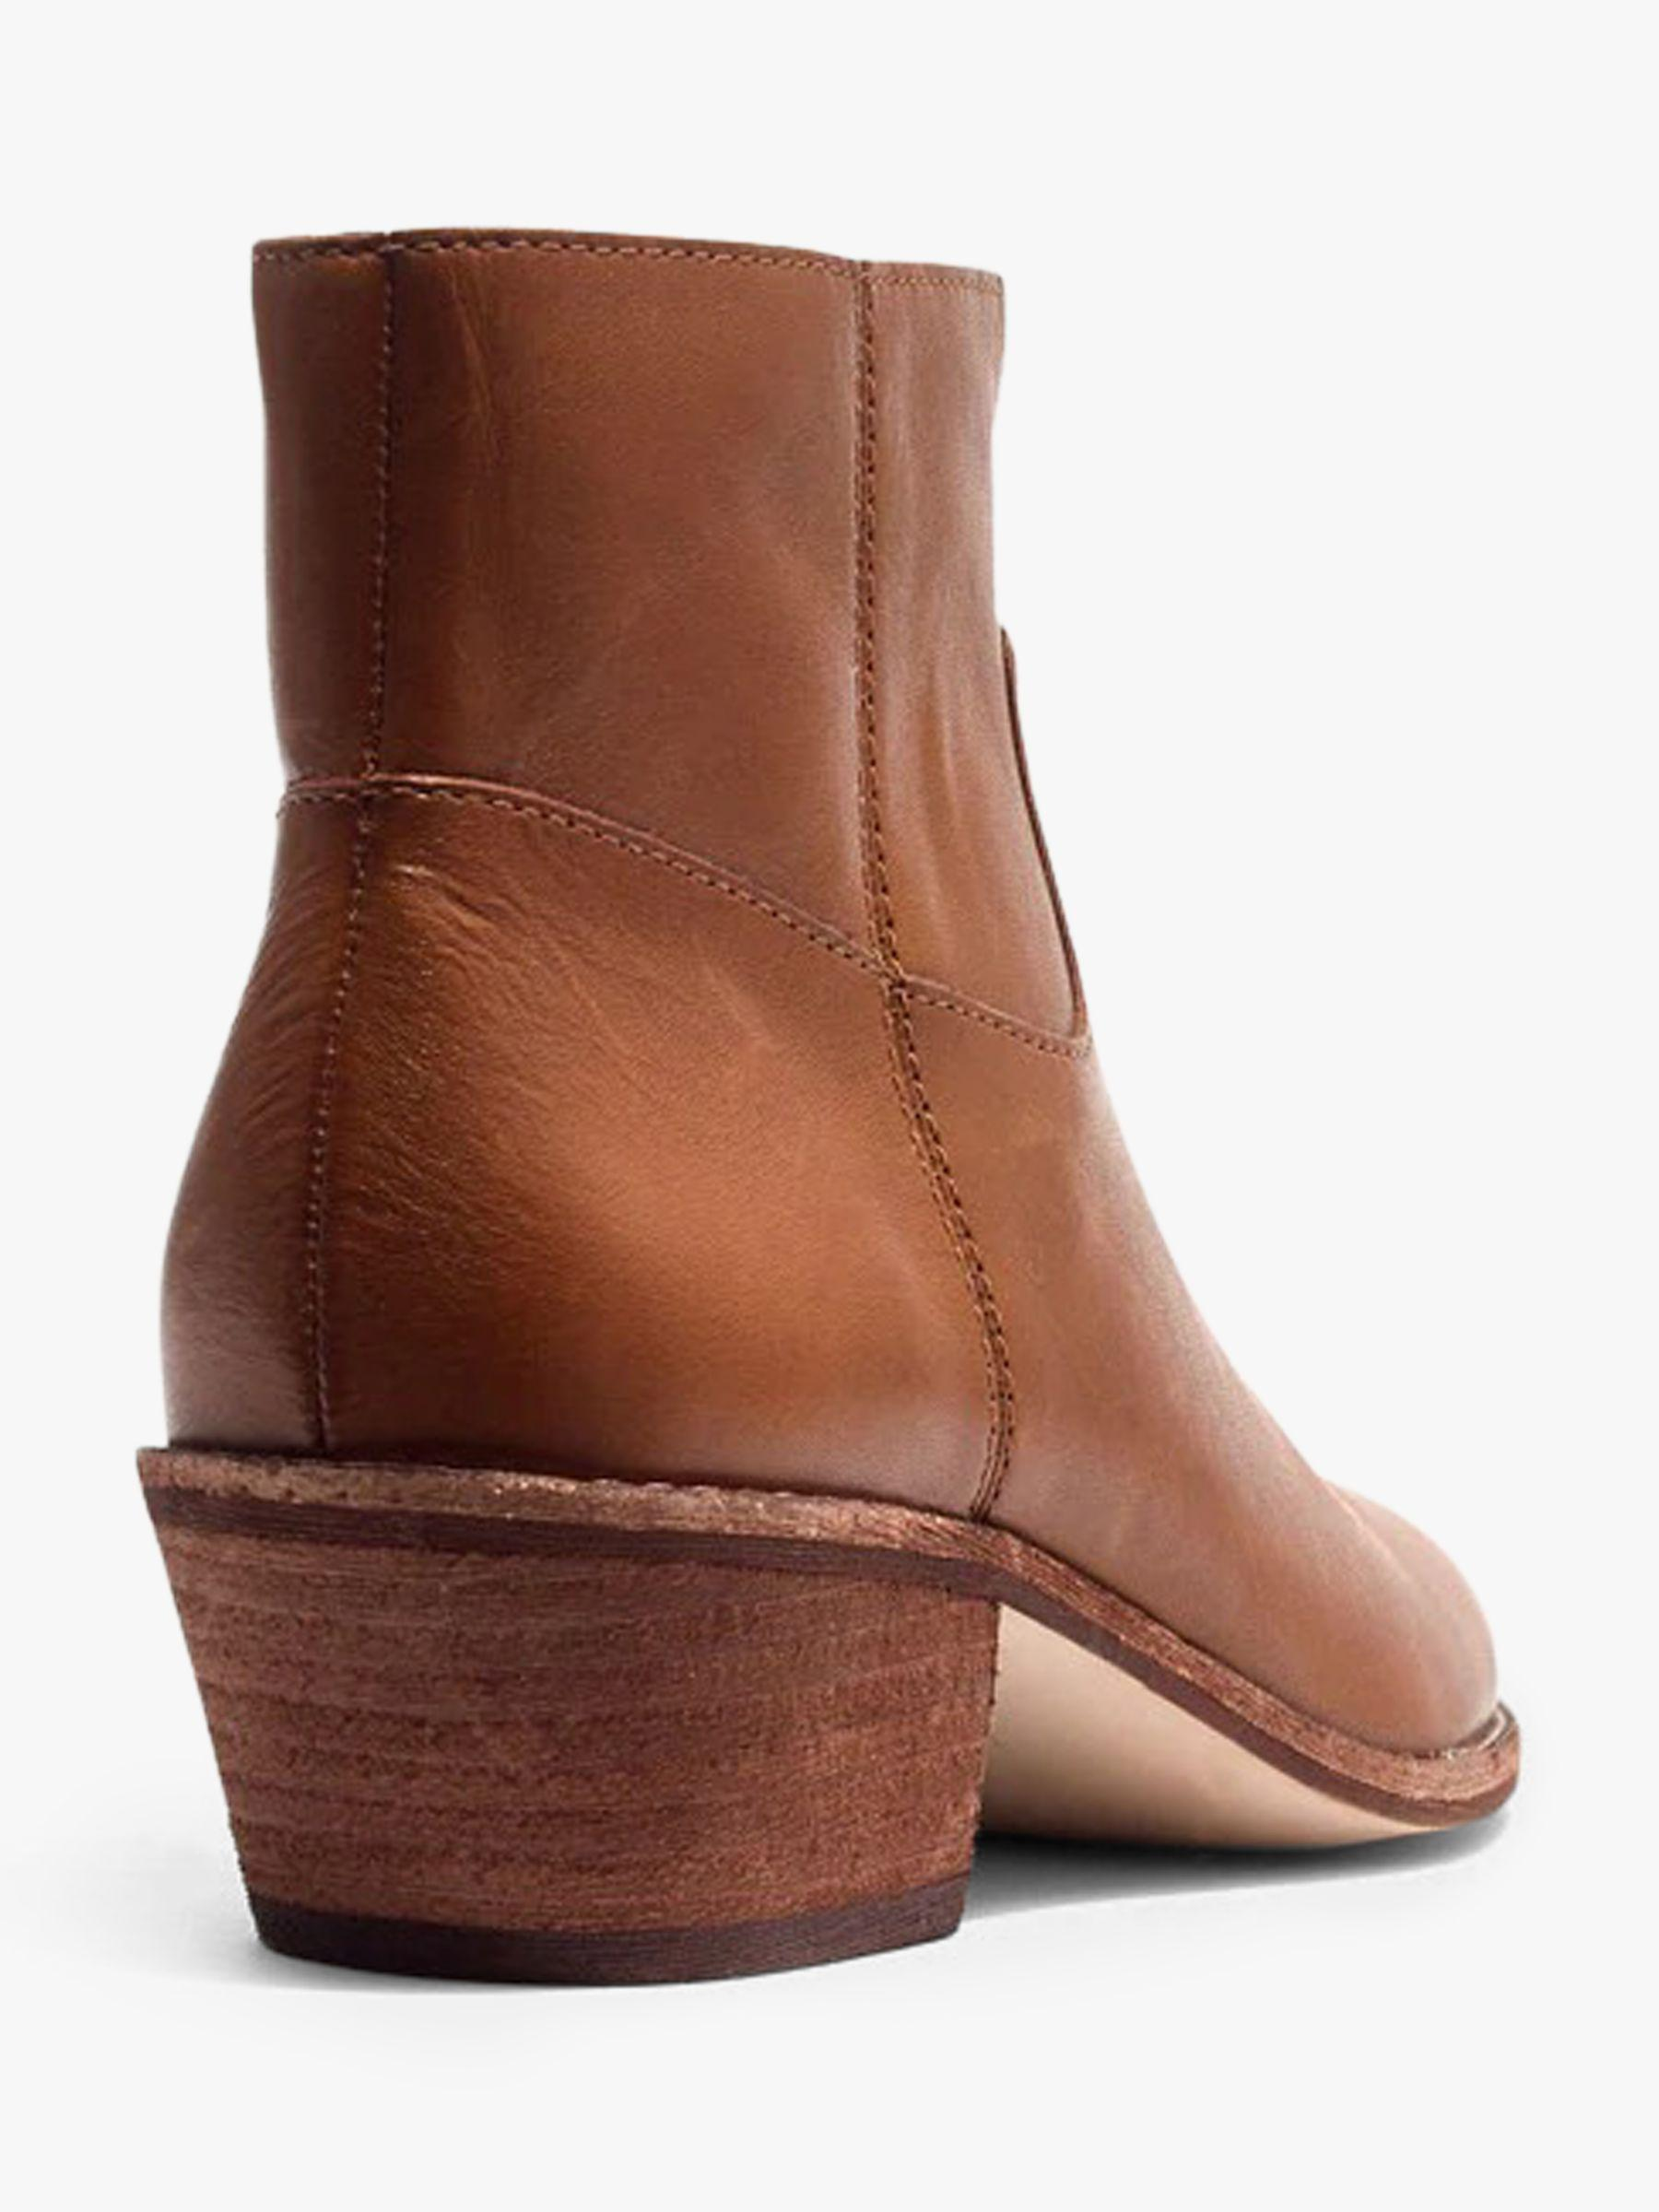 dbb0e82c130e ... Madewell - Brown Charley Leather Pointed Ankle Boots - Lyst · Visit John  Lewis and Partners. Tap to visit site